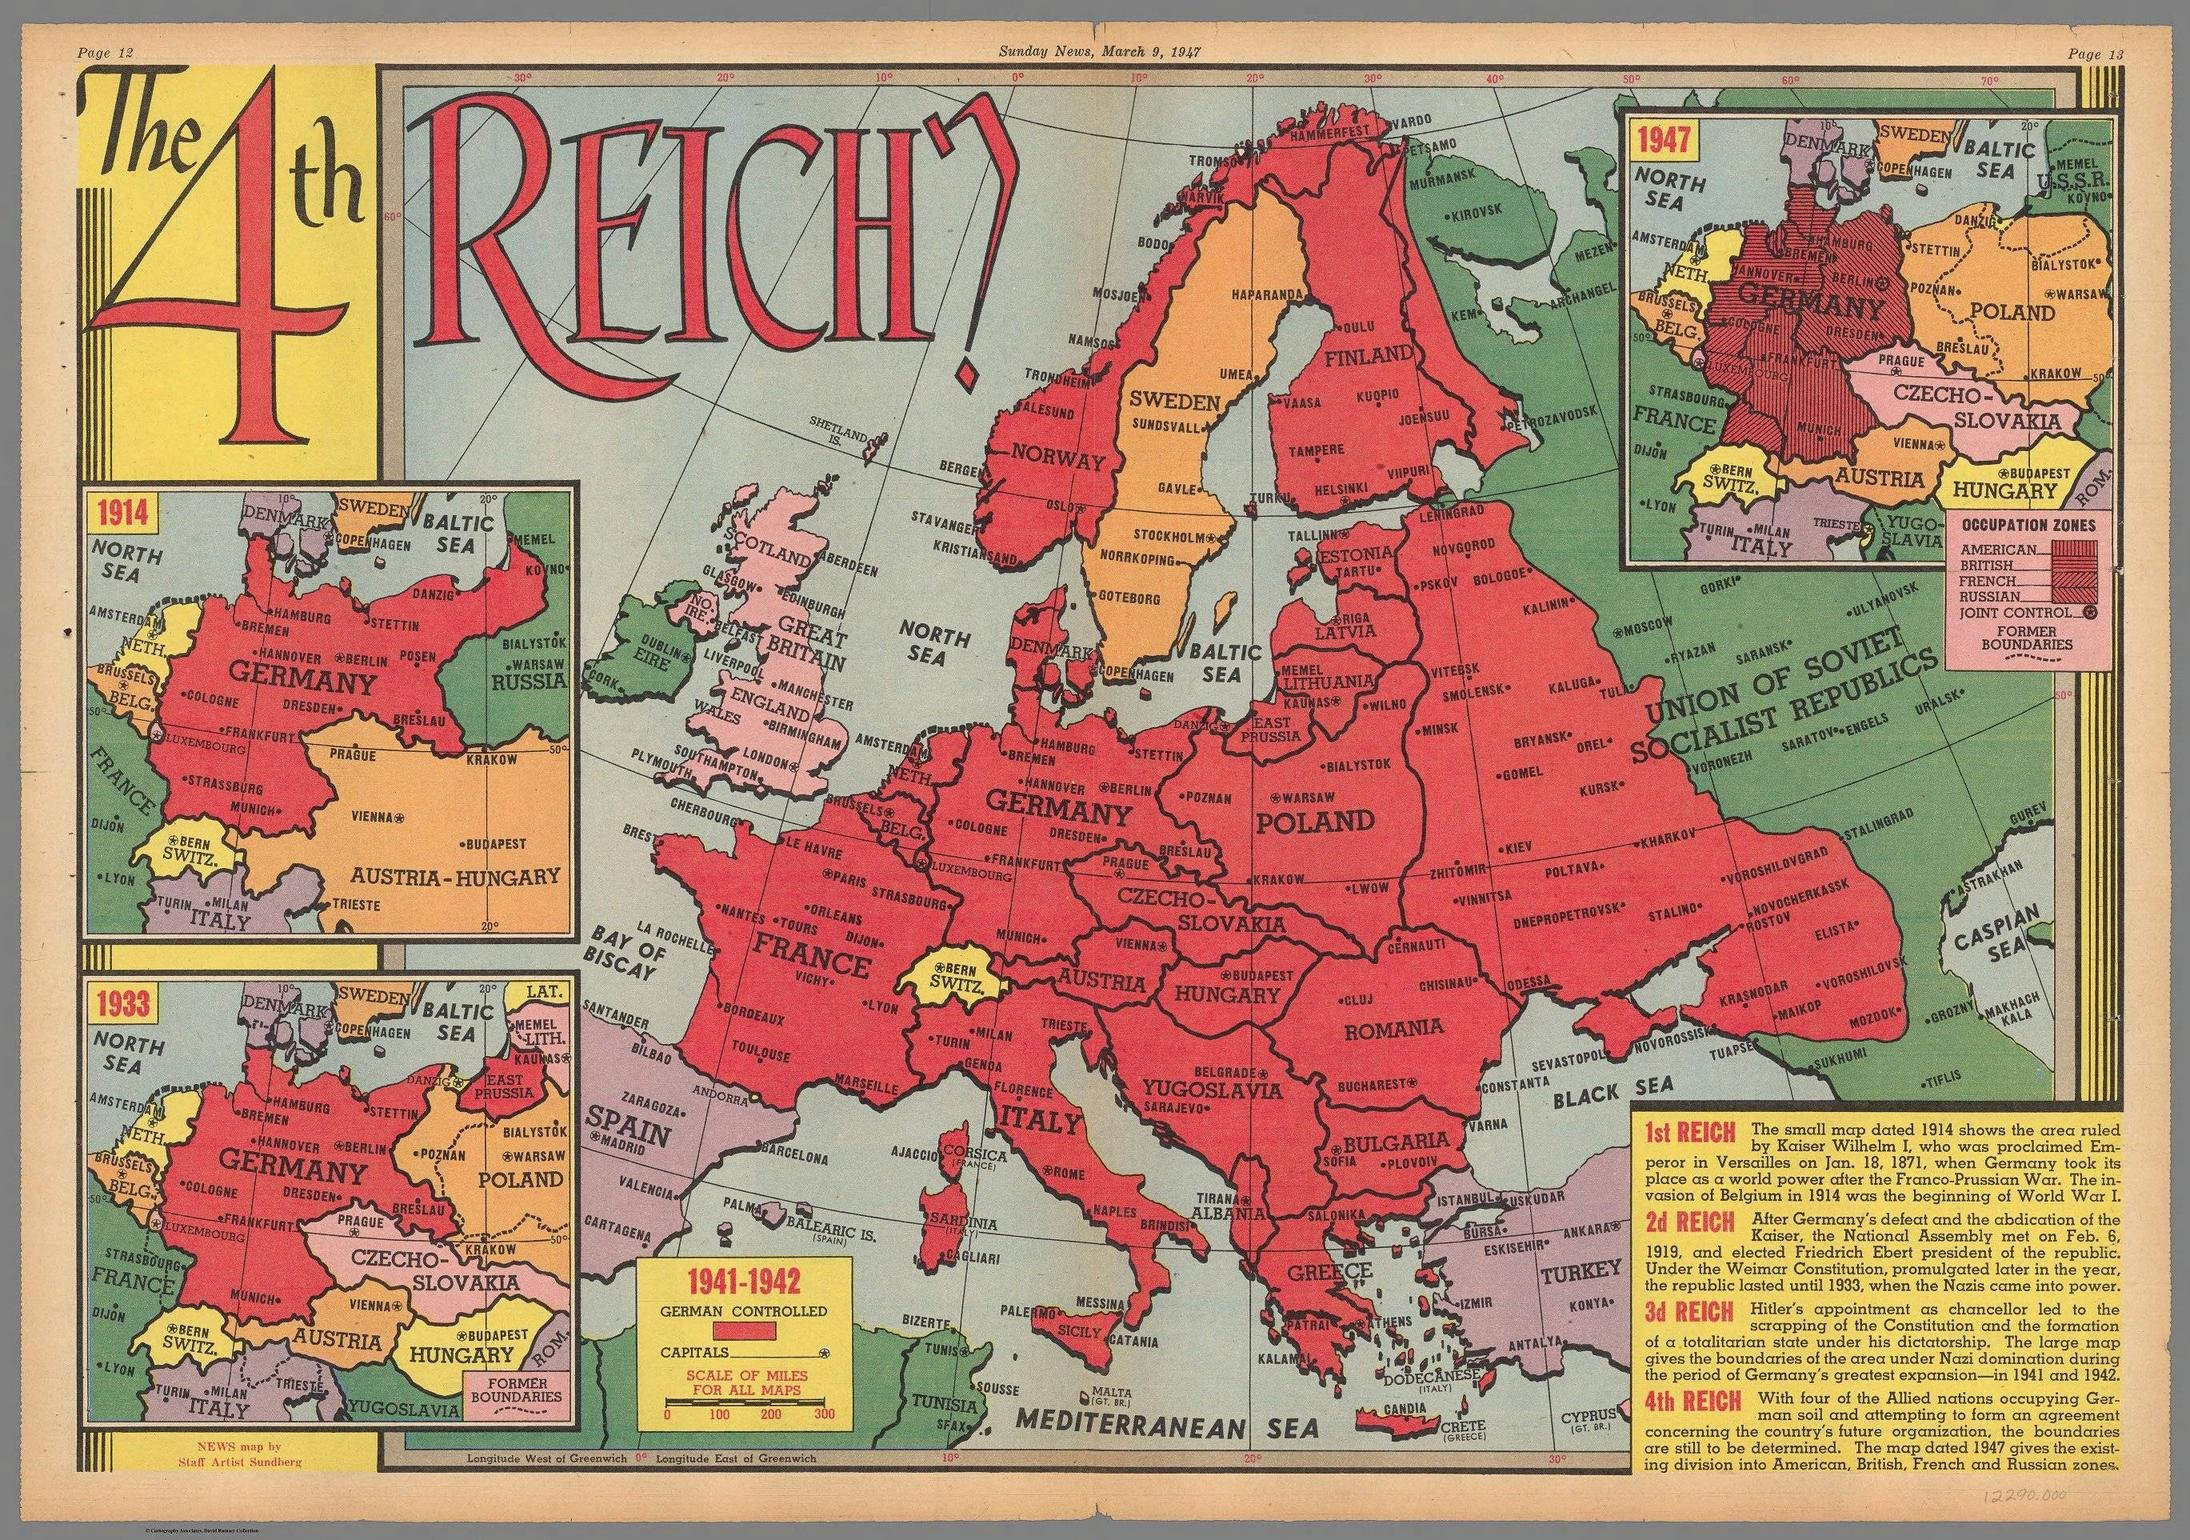 Map Of Germany In 1914.The 4th Reich 1947 Vivid Maps